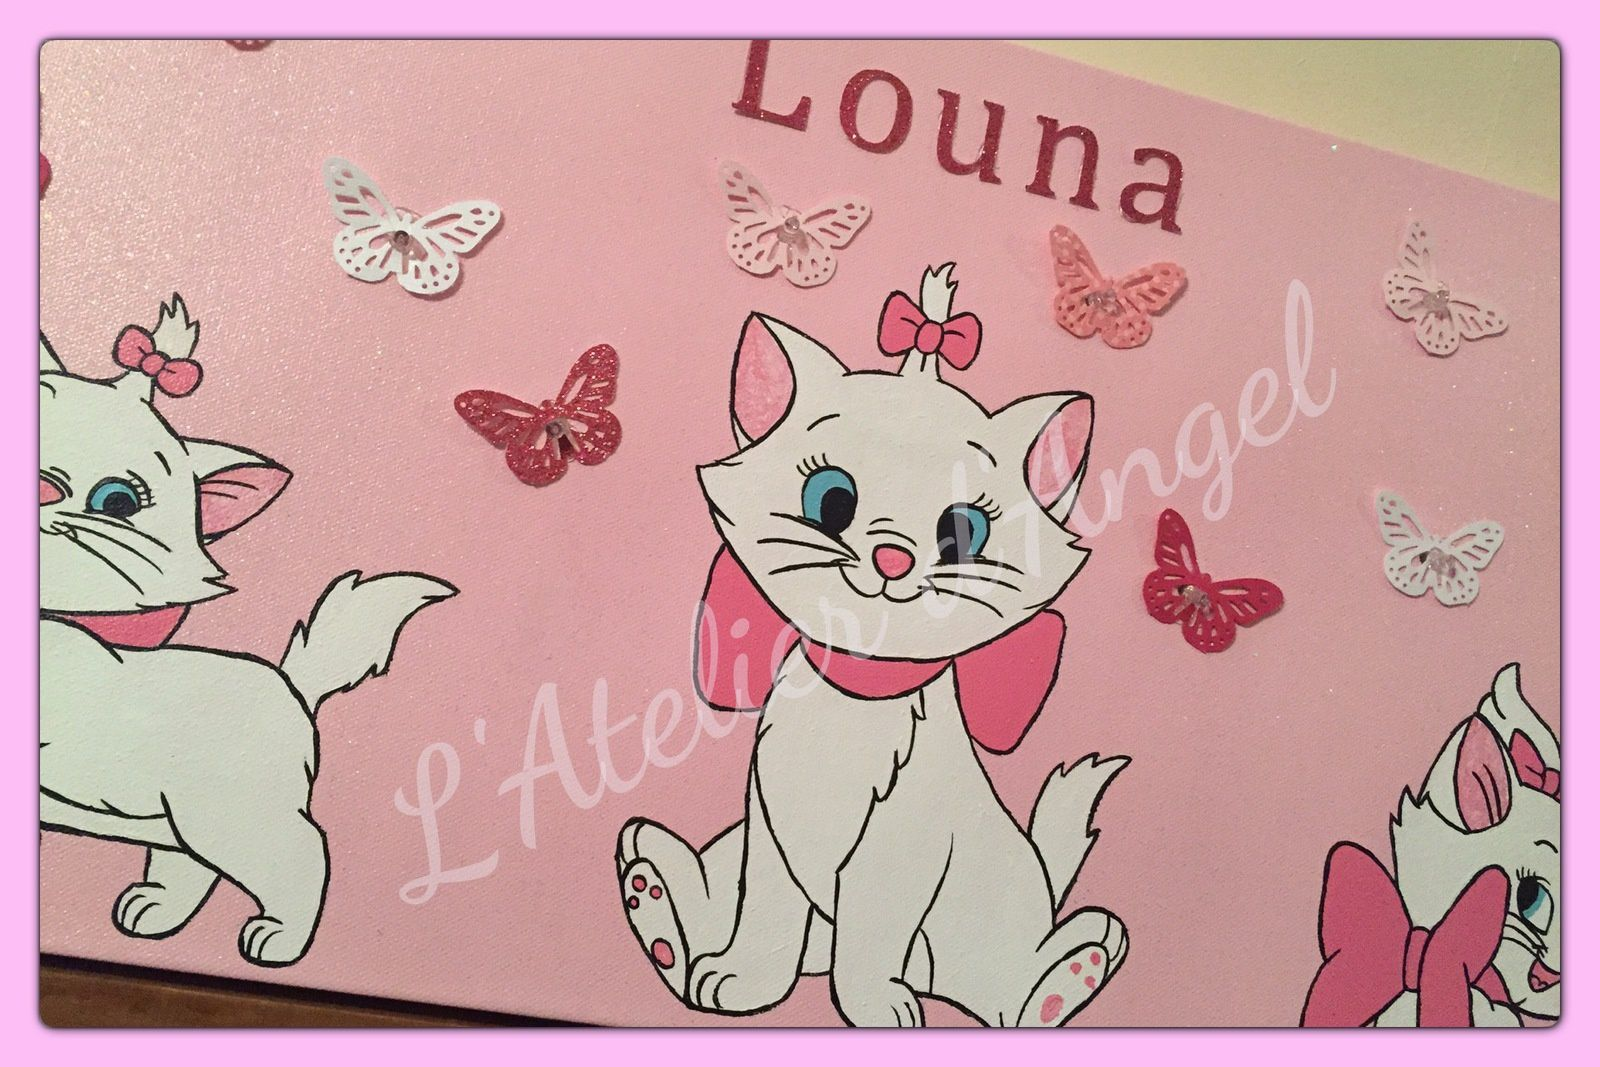 Toile Lumineuse Marie des aristochats